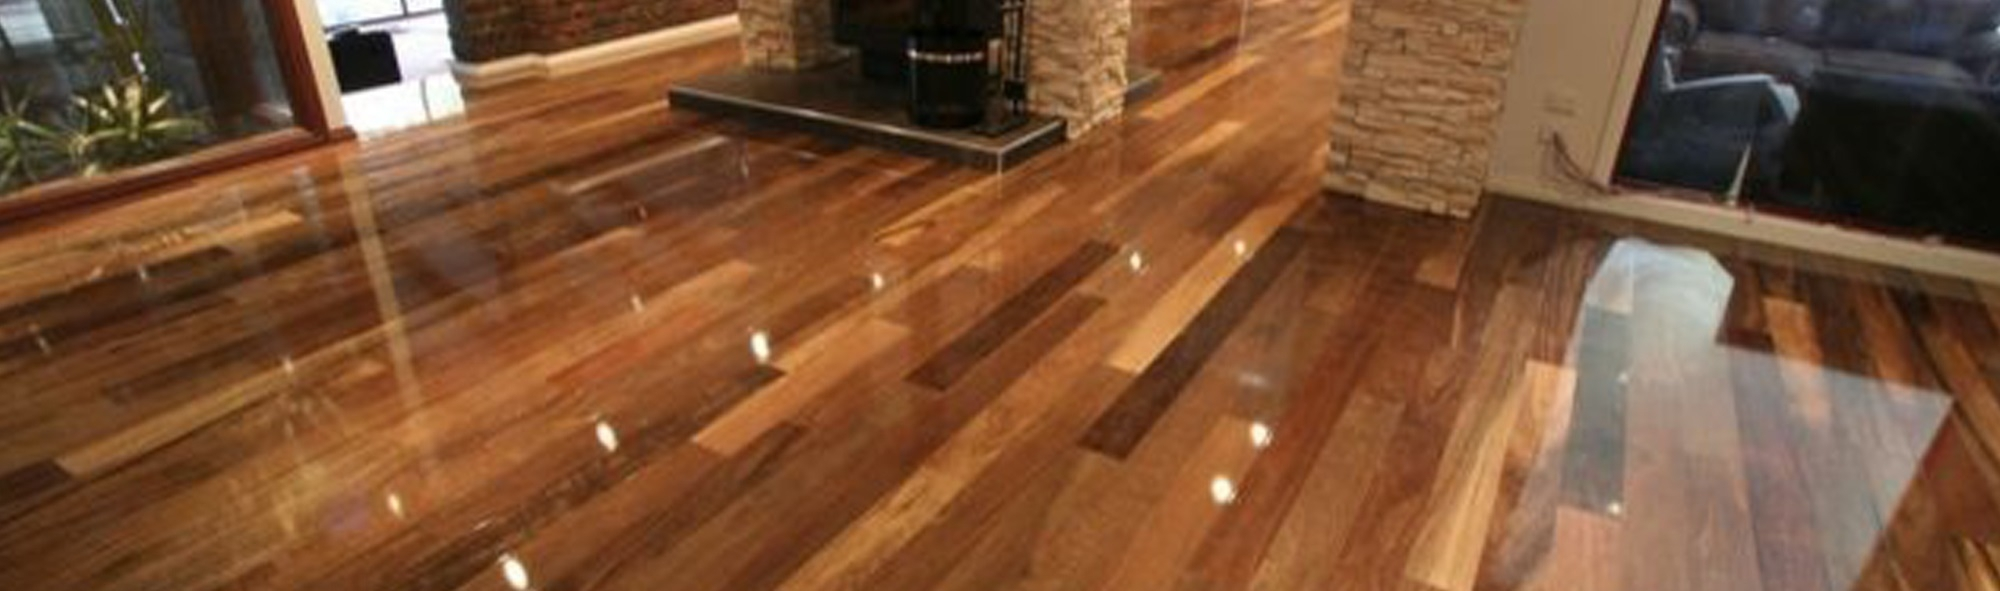 Clear Epoxy Wood Floor Finish